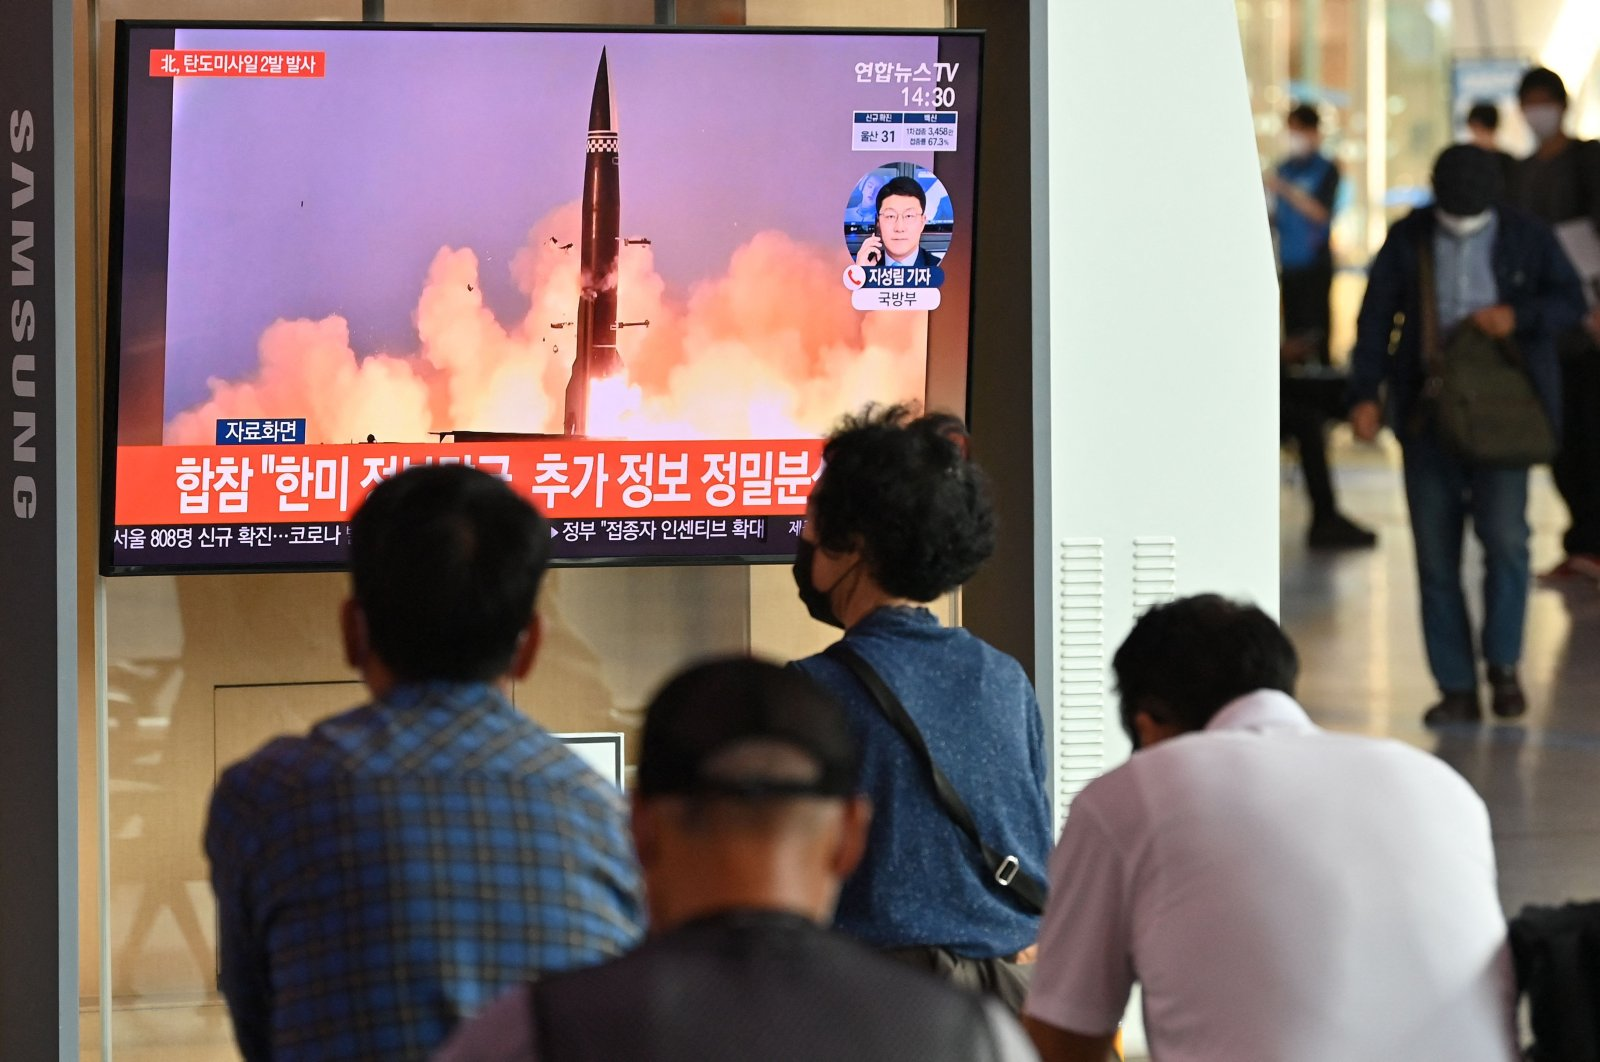 People watch a television news broadcast showing file footage of a North Korean missile test, at a railway station in Seoul on Sept. 15, 2021, after North Korea fired two ballistic missiles into the sea, according to the South's military. (AFP Photo)